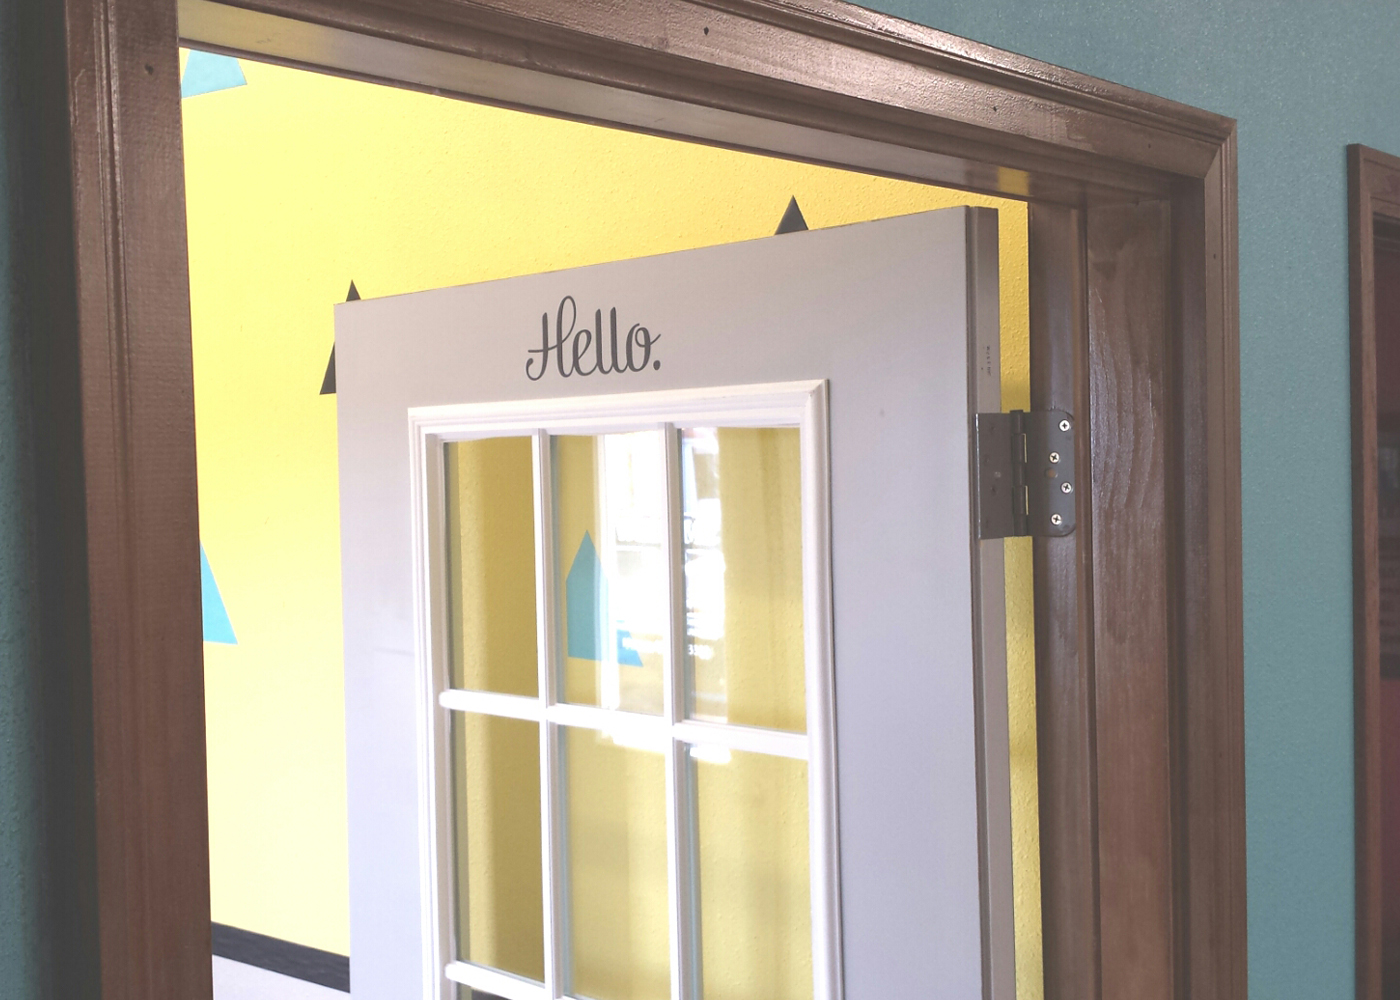 da023-h-i-hello-goodbye-entryway-wall-decal-quote.jpg